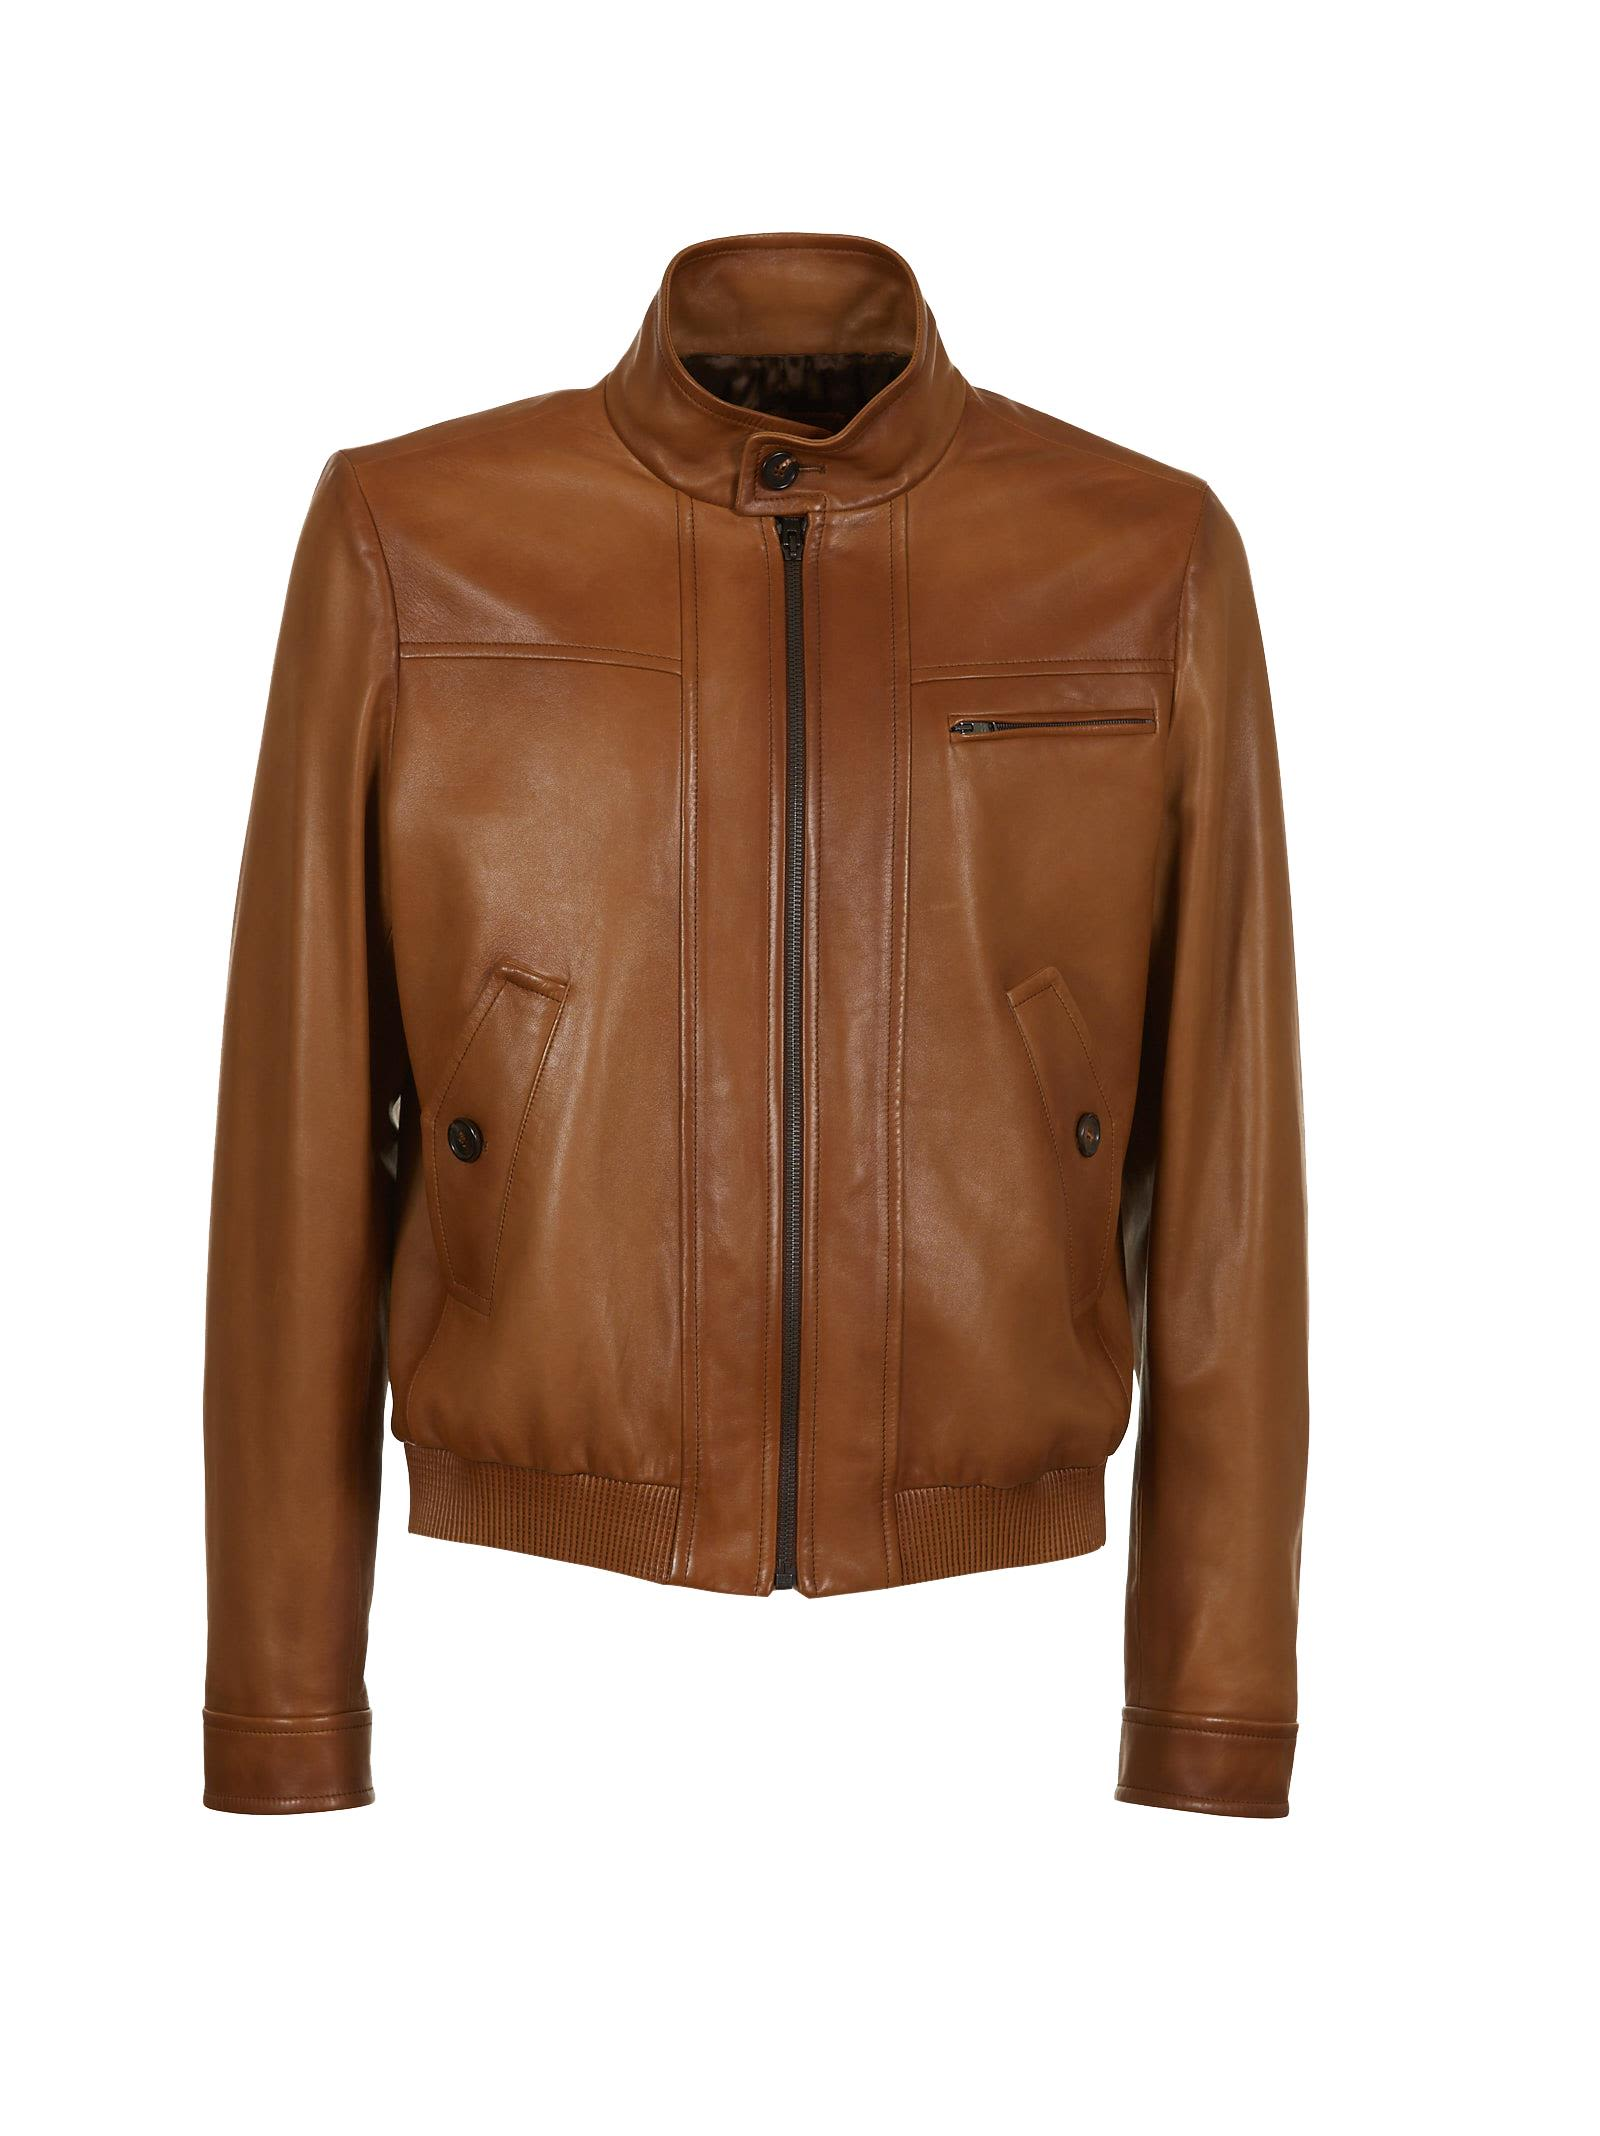 Prada Classic Leather Jacket